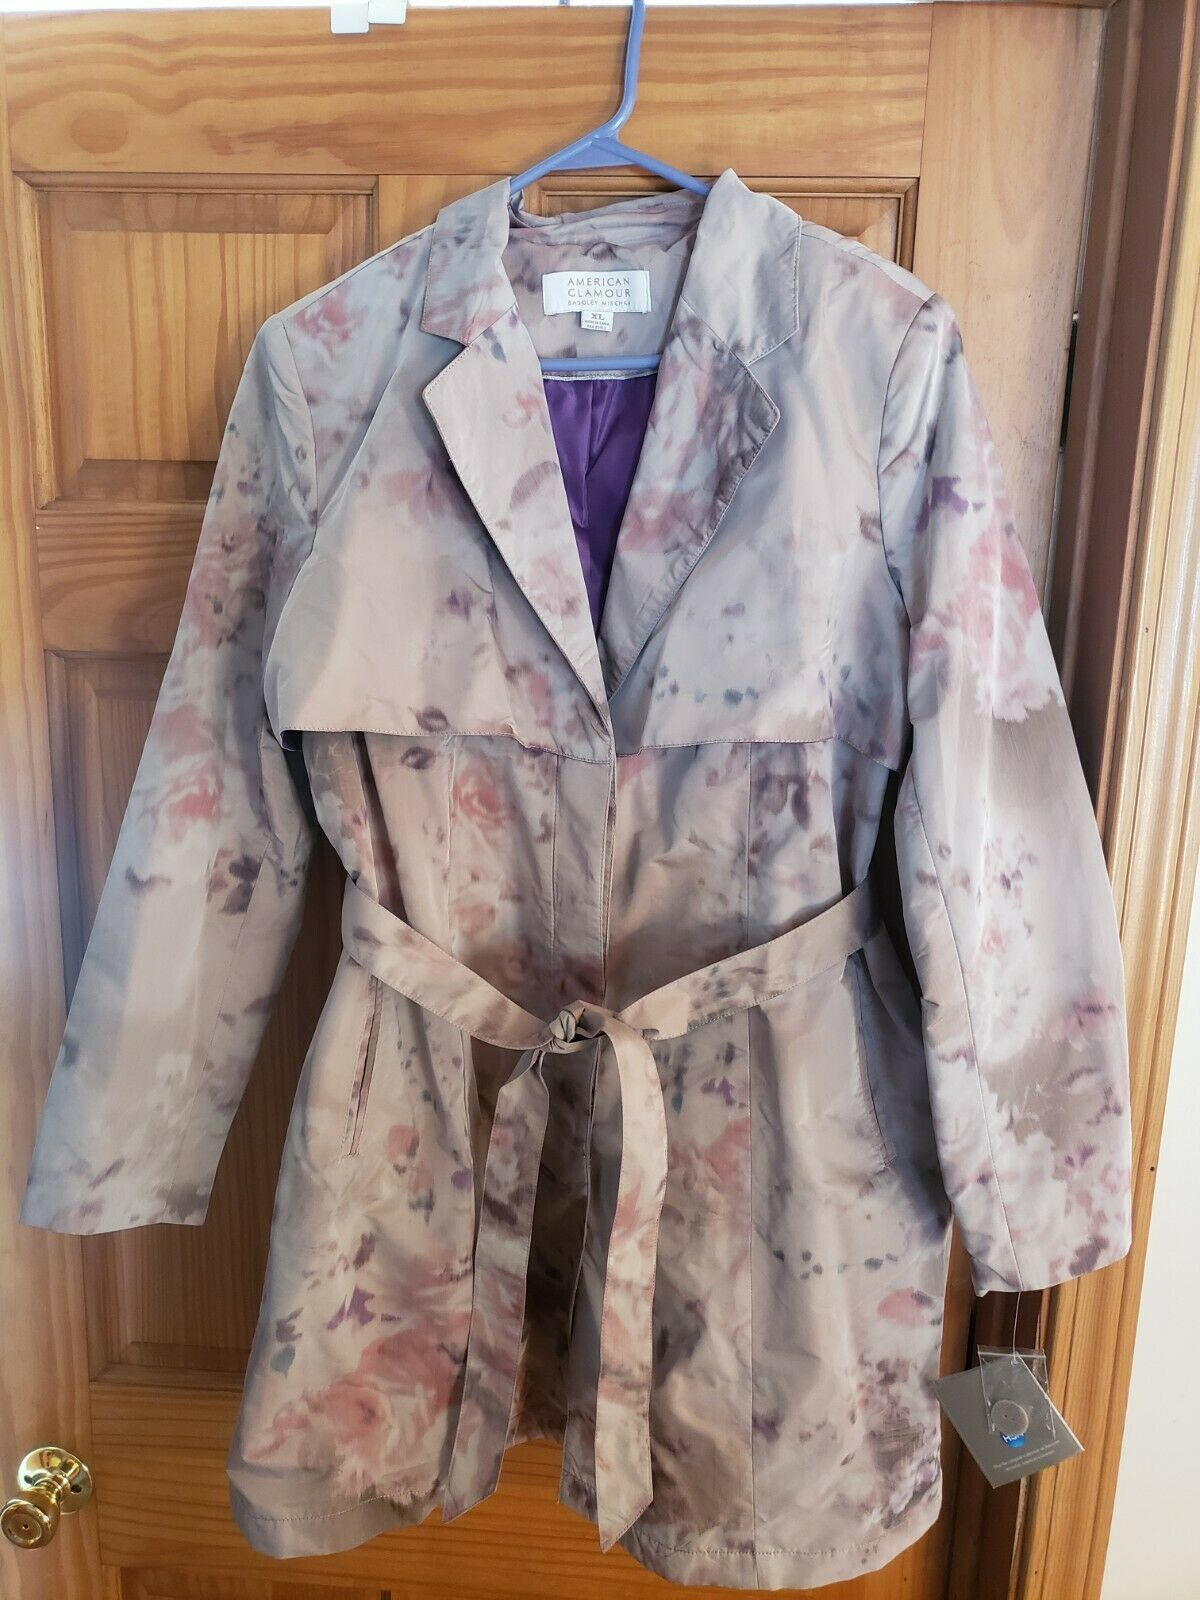 American Glamour Badgley Mischka Belted Trench Coat Jacket Watercolor Floral XL